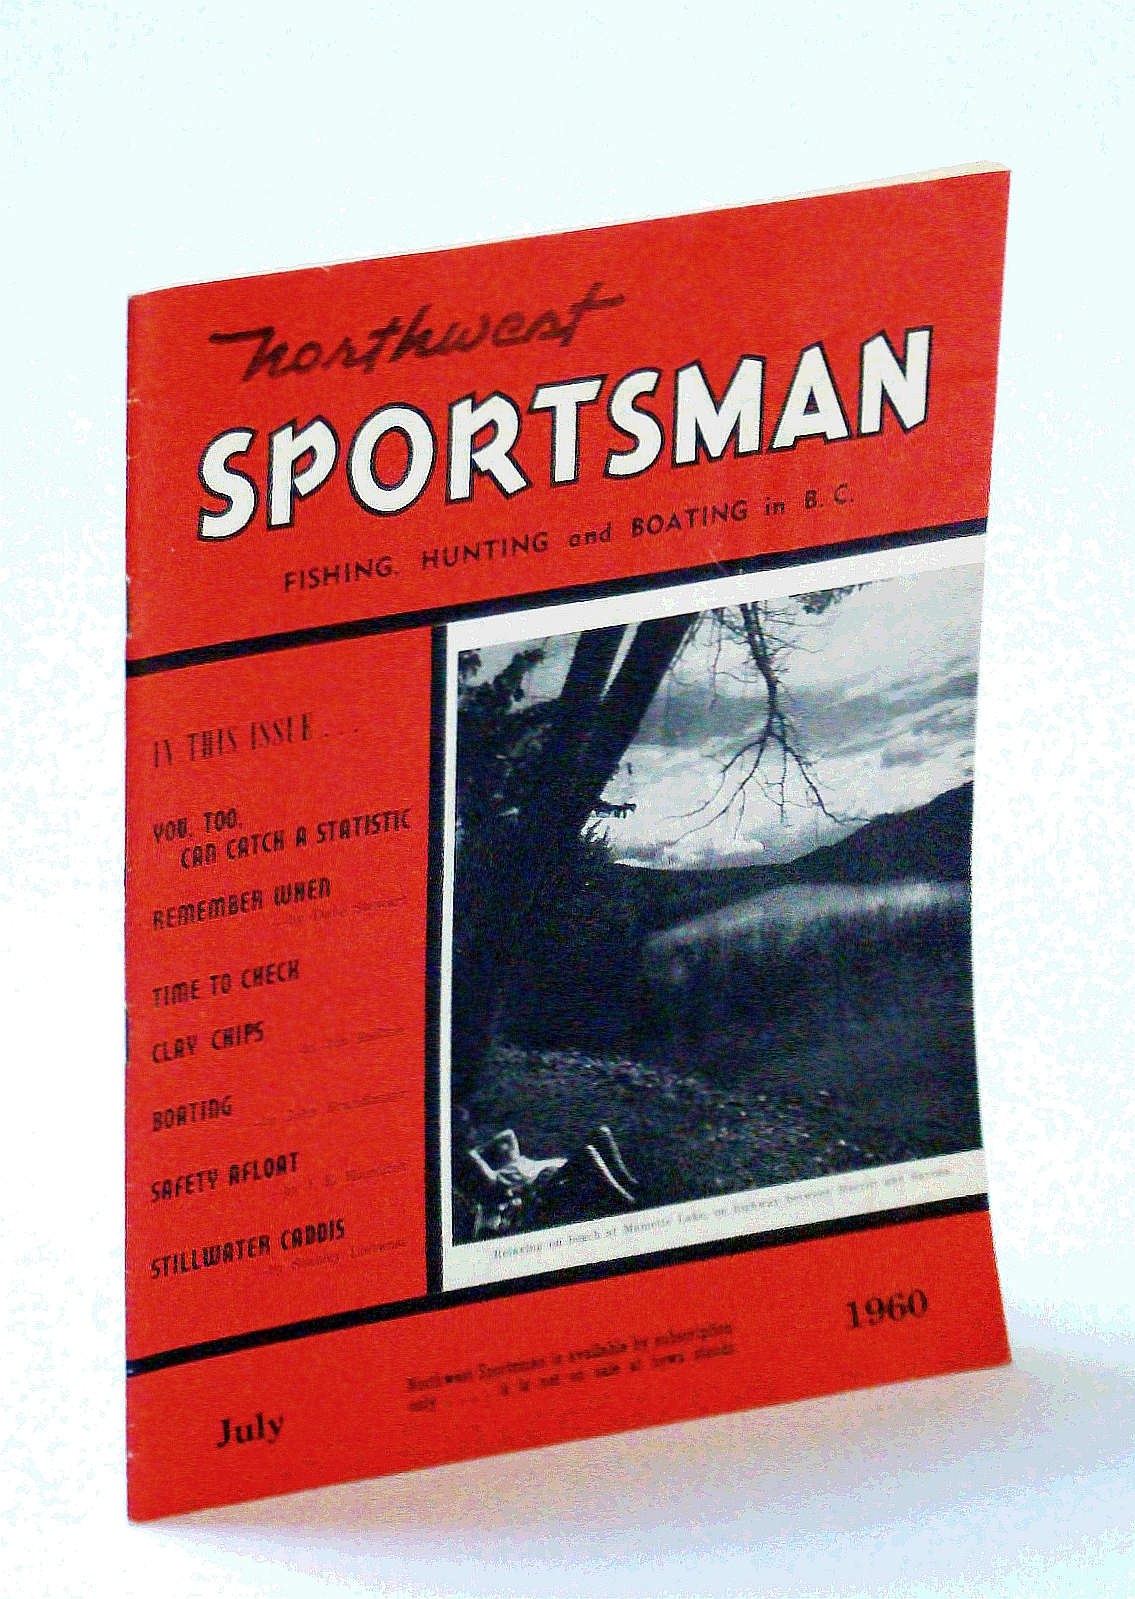 Image for Northwest Sportsman Magazine - Fishing, Hunting and Boating in B.C., July 1960 - Interesting History of Kamloops Area